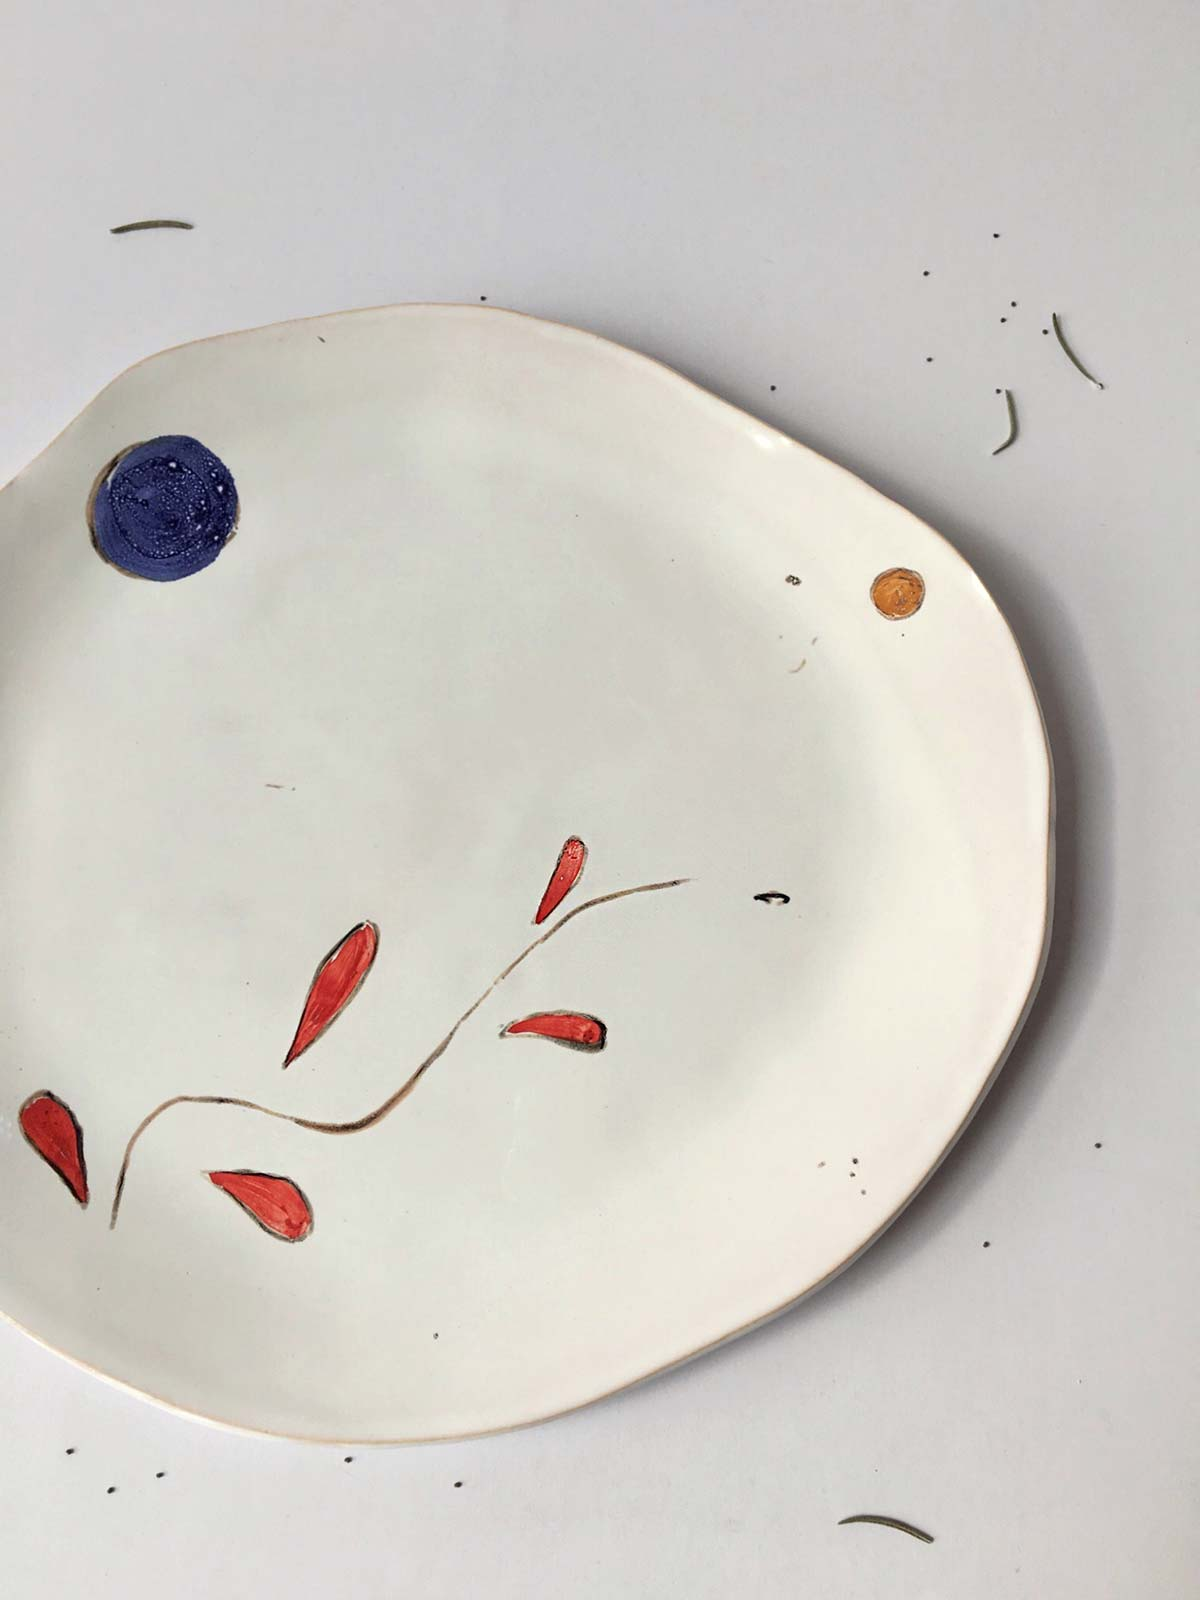 """Painting - Flat plate """"Composition No. 6"""""""